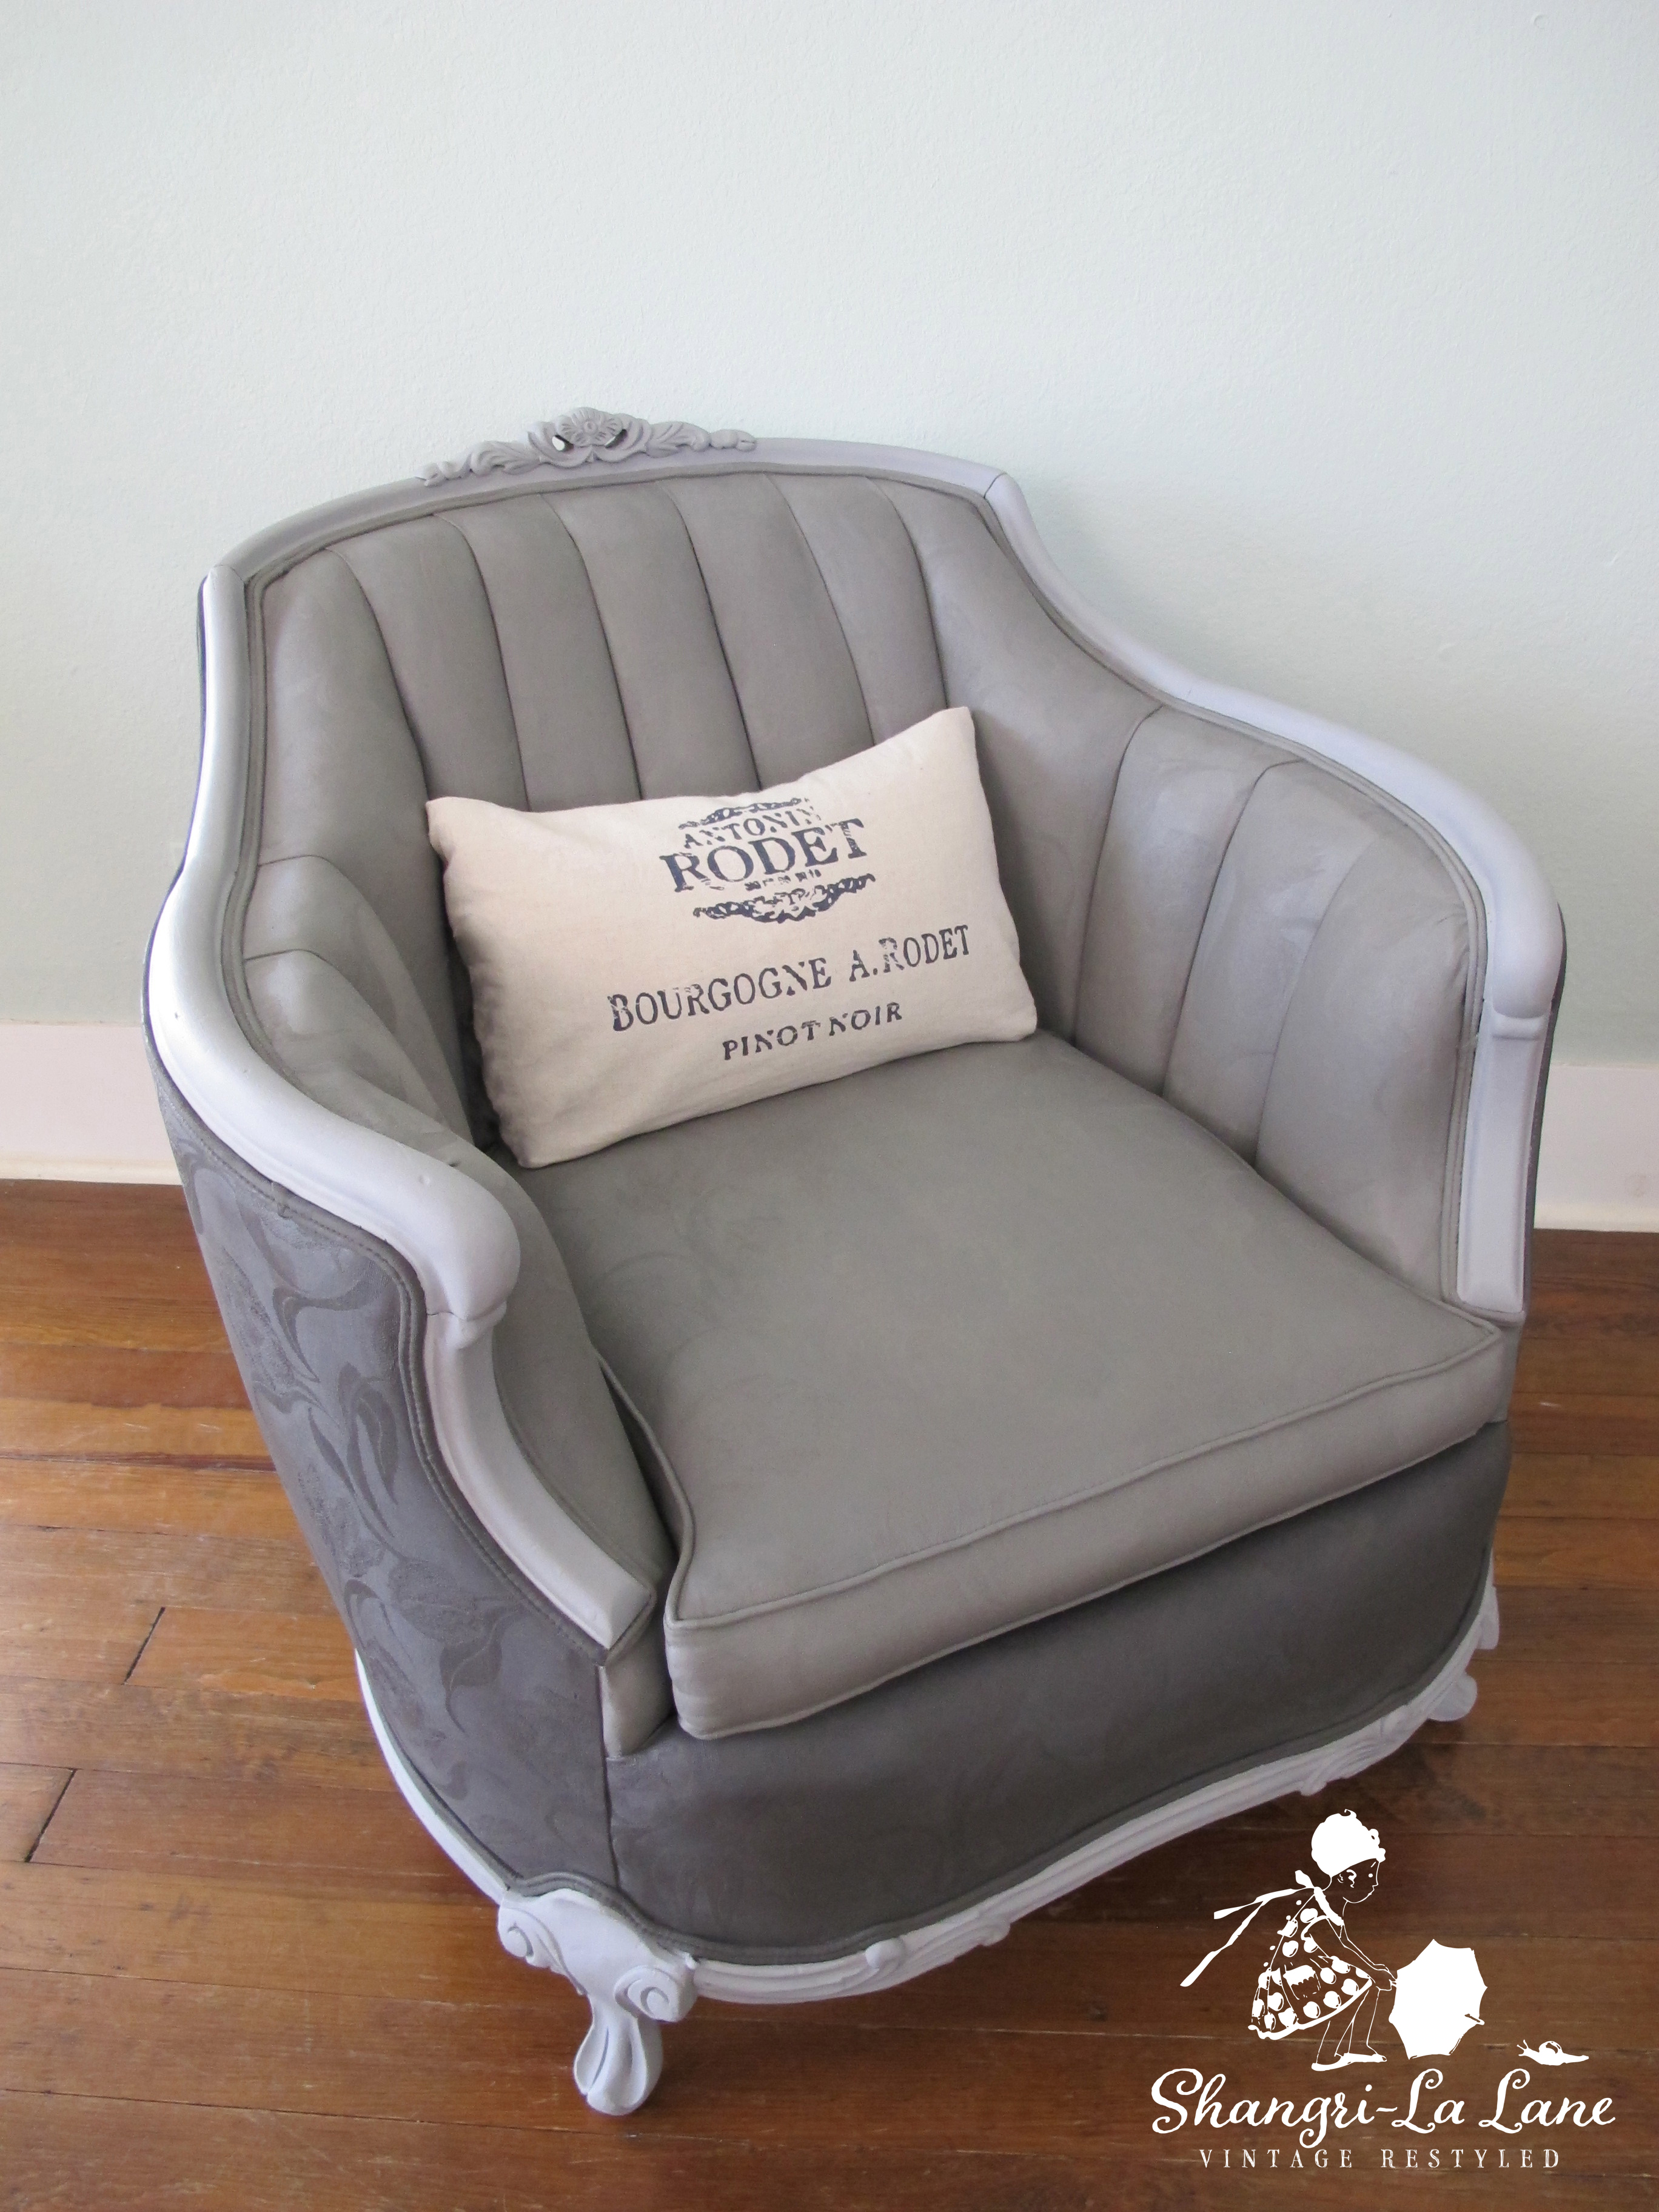 Video Tutorial: How To Paint Over Upholstery Fabric - Shangri-La Lane